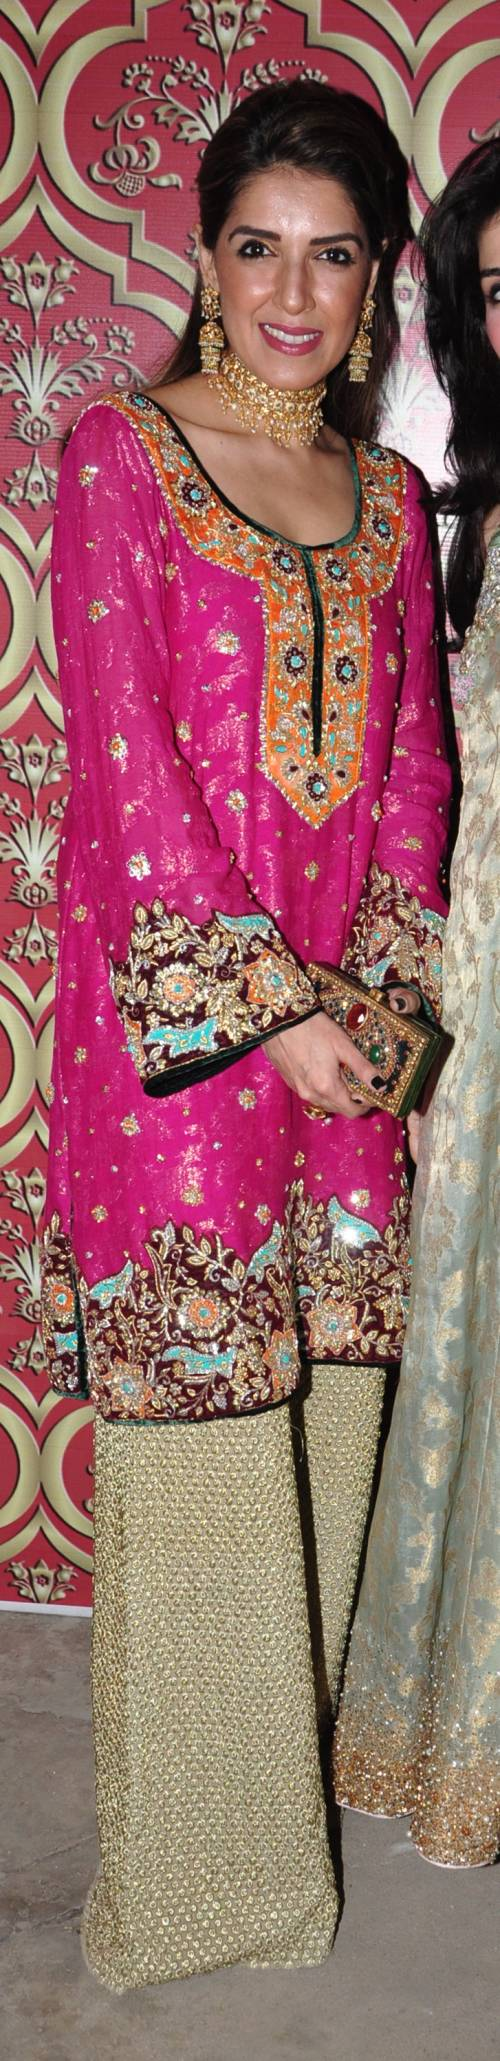 Best dresses to wear to a march wedding  Maheen Karim Khan THIS WEEKS BEST DRESSED th March  MONSOON